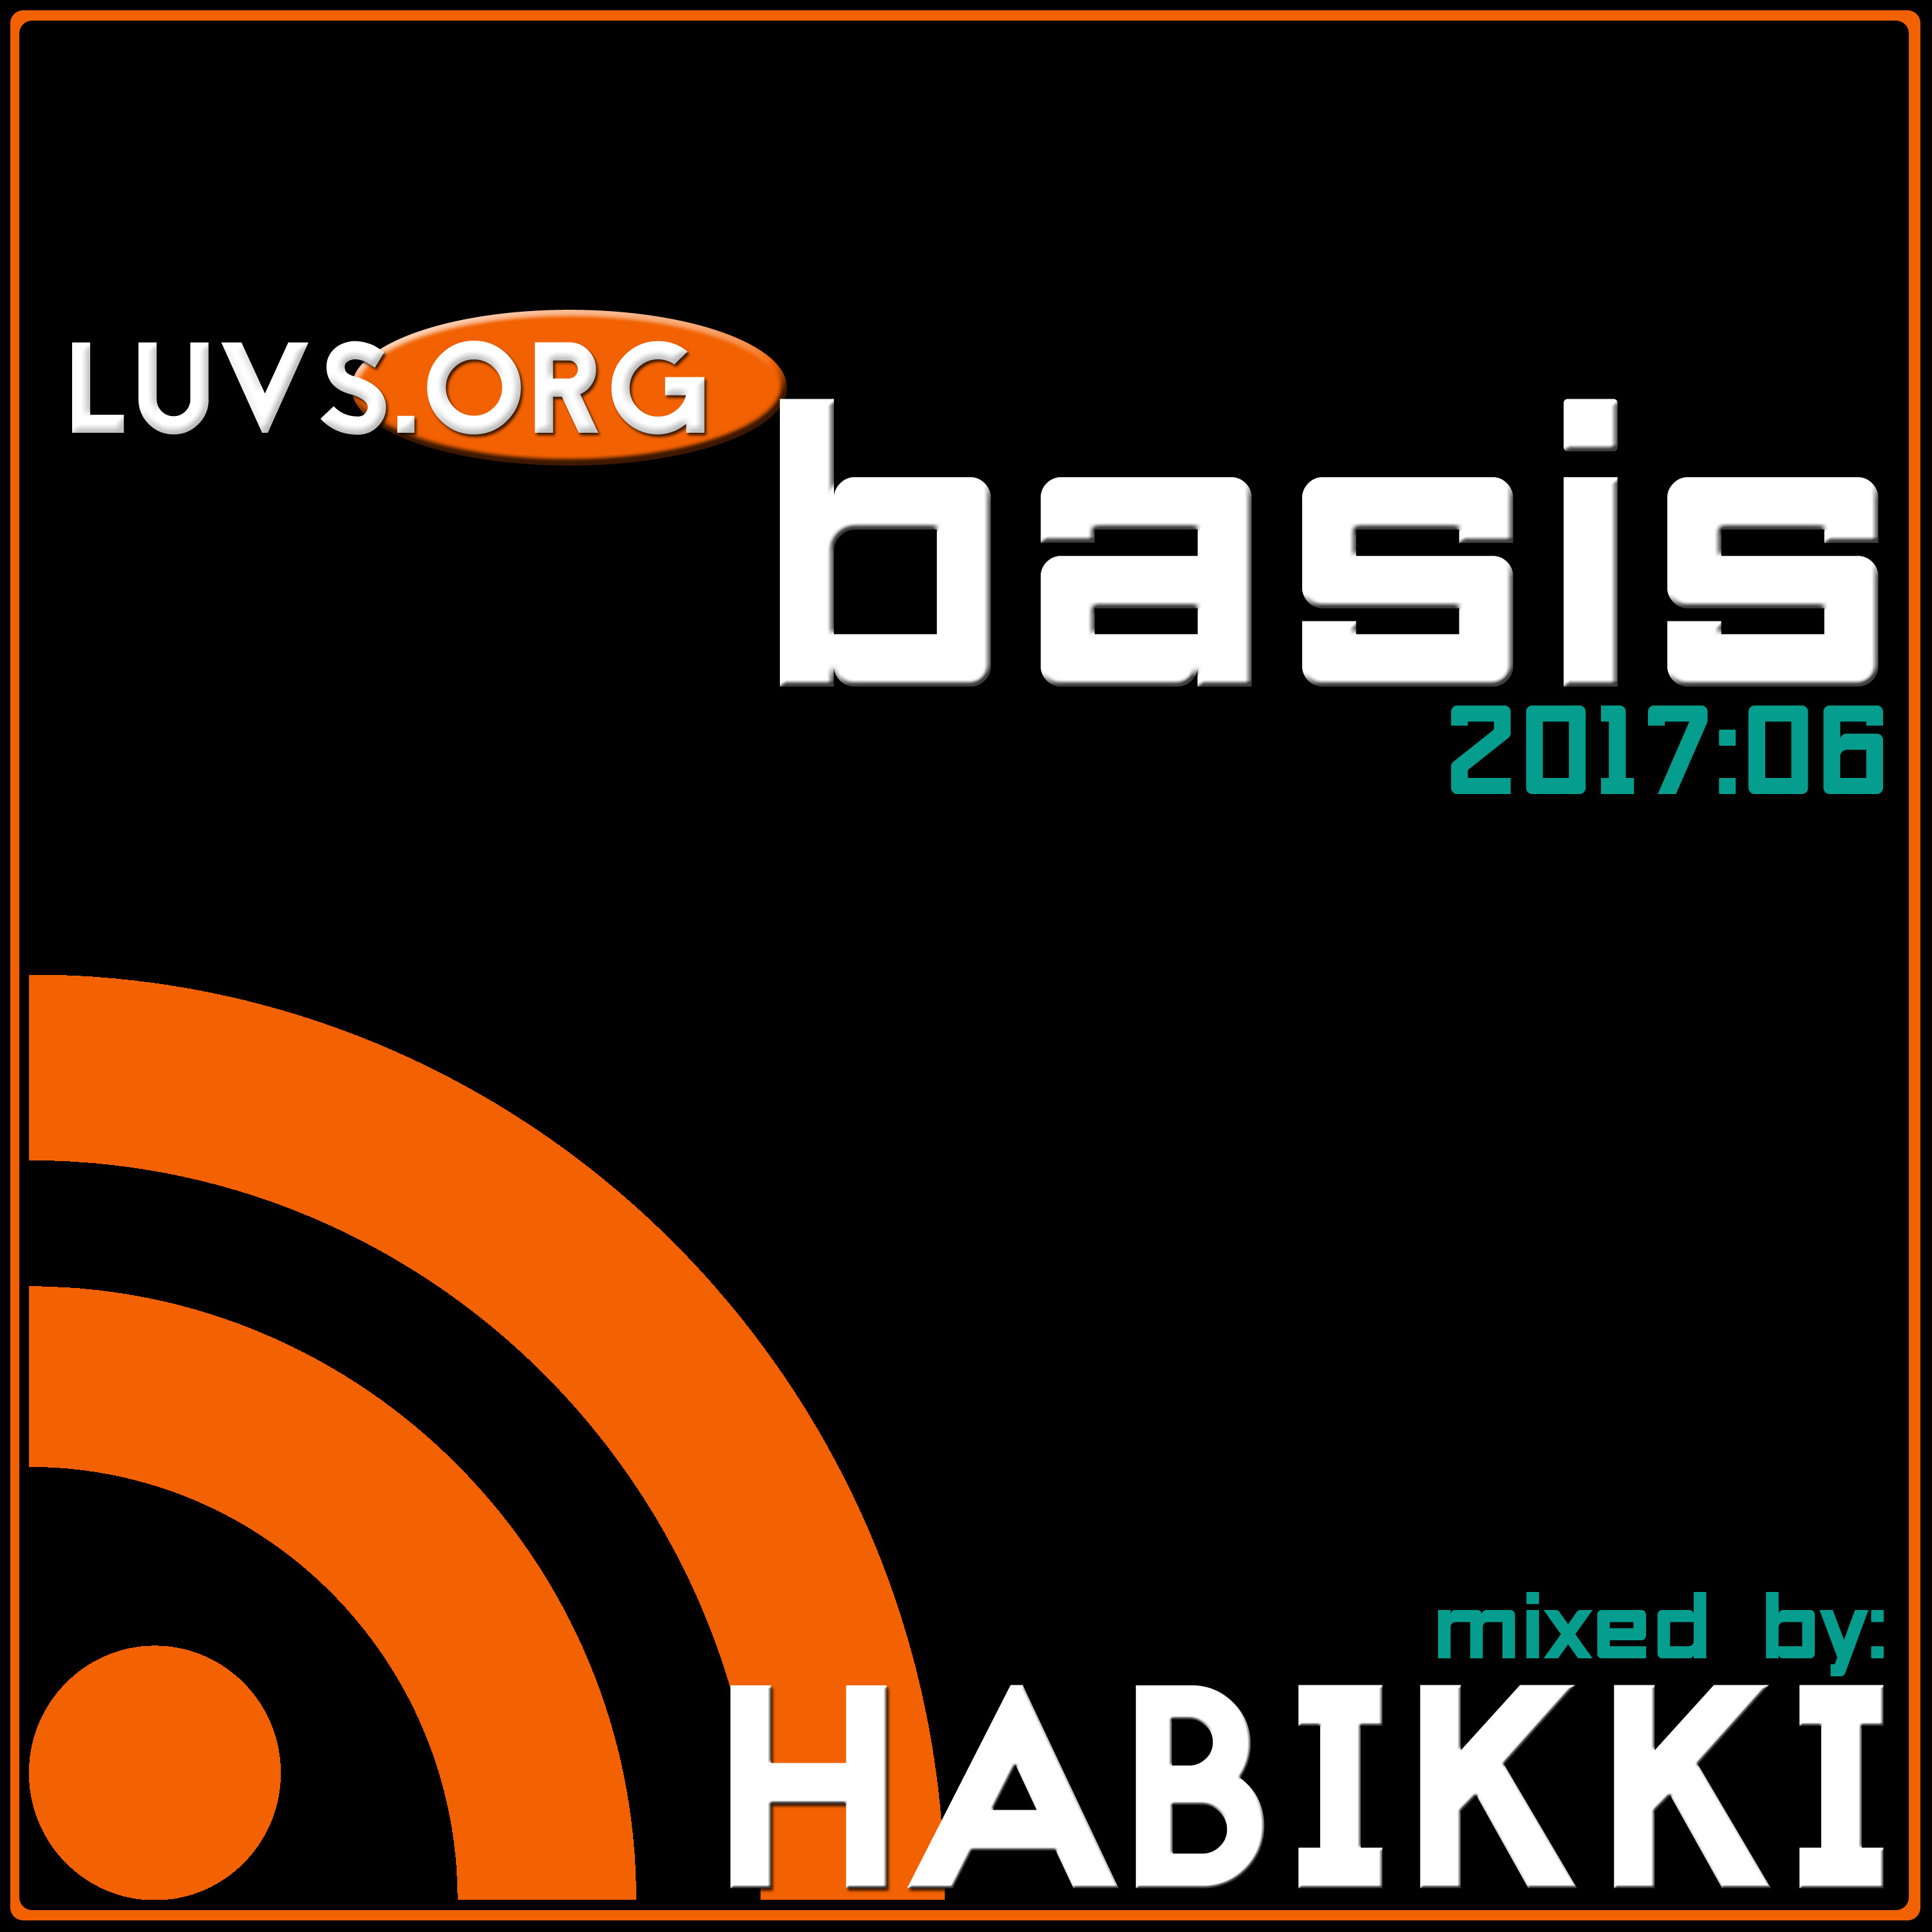 Luvs.org Sessions: [2017:06] Basis